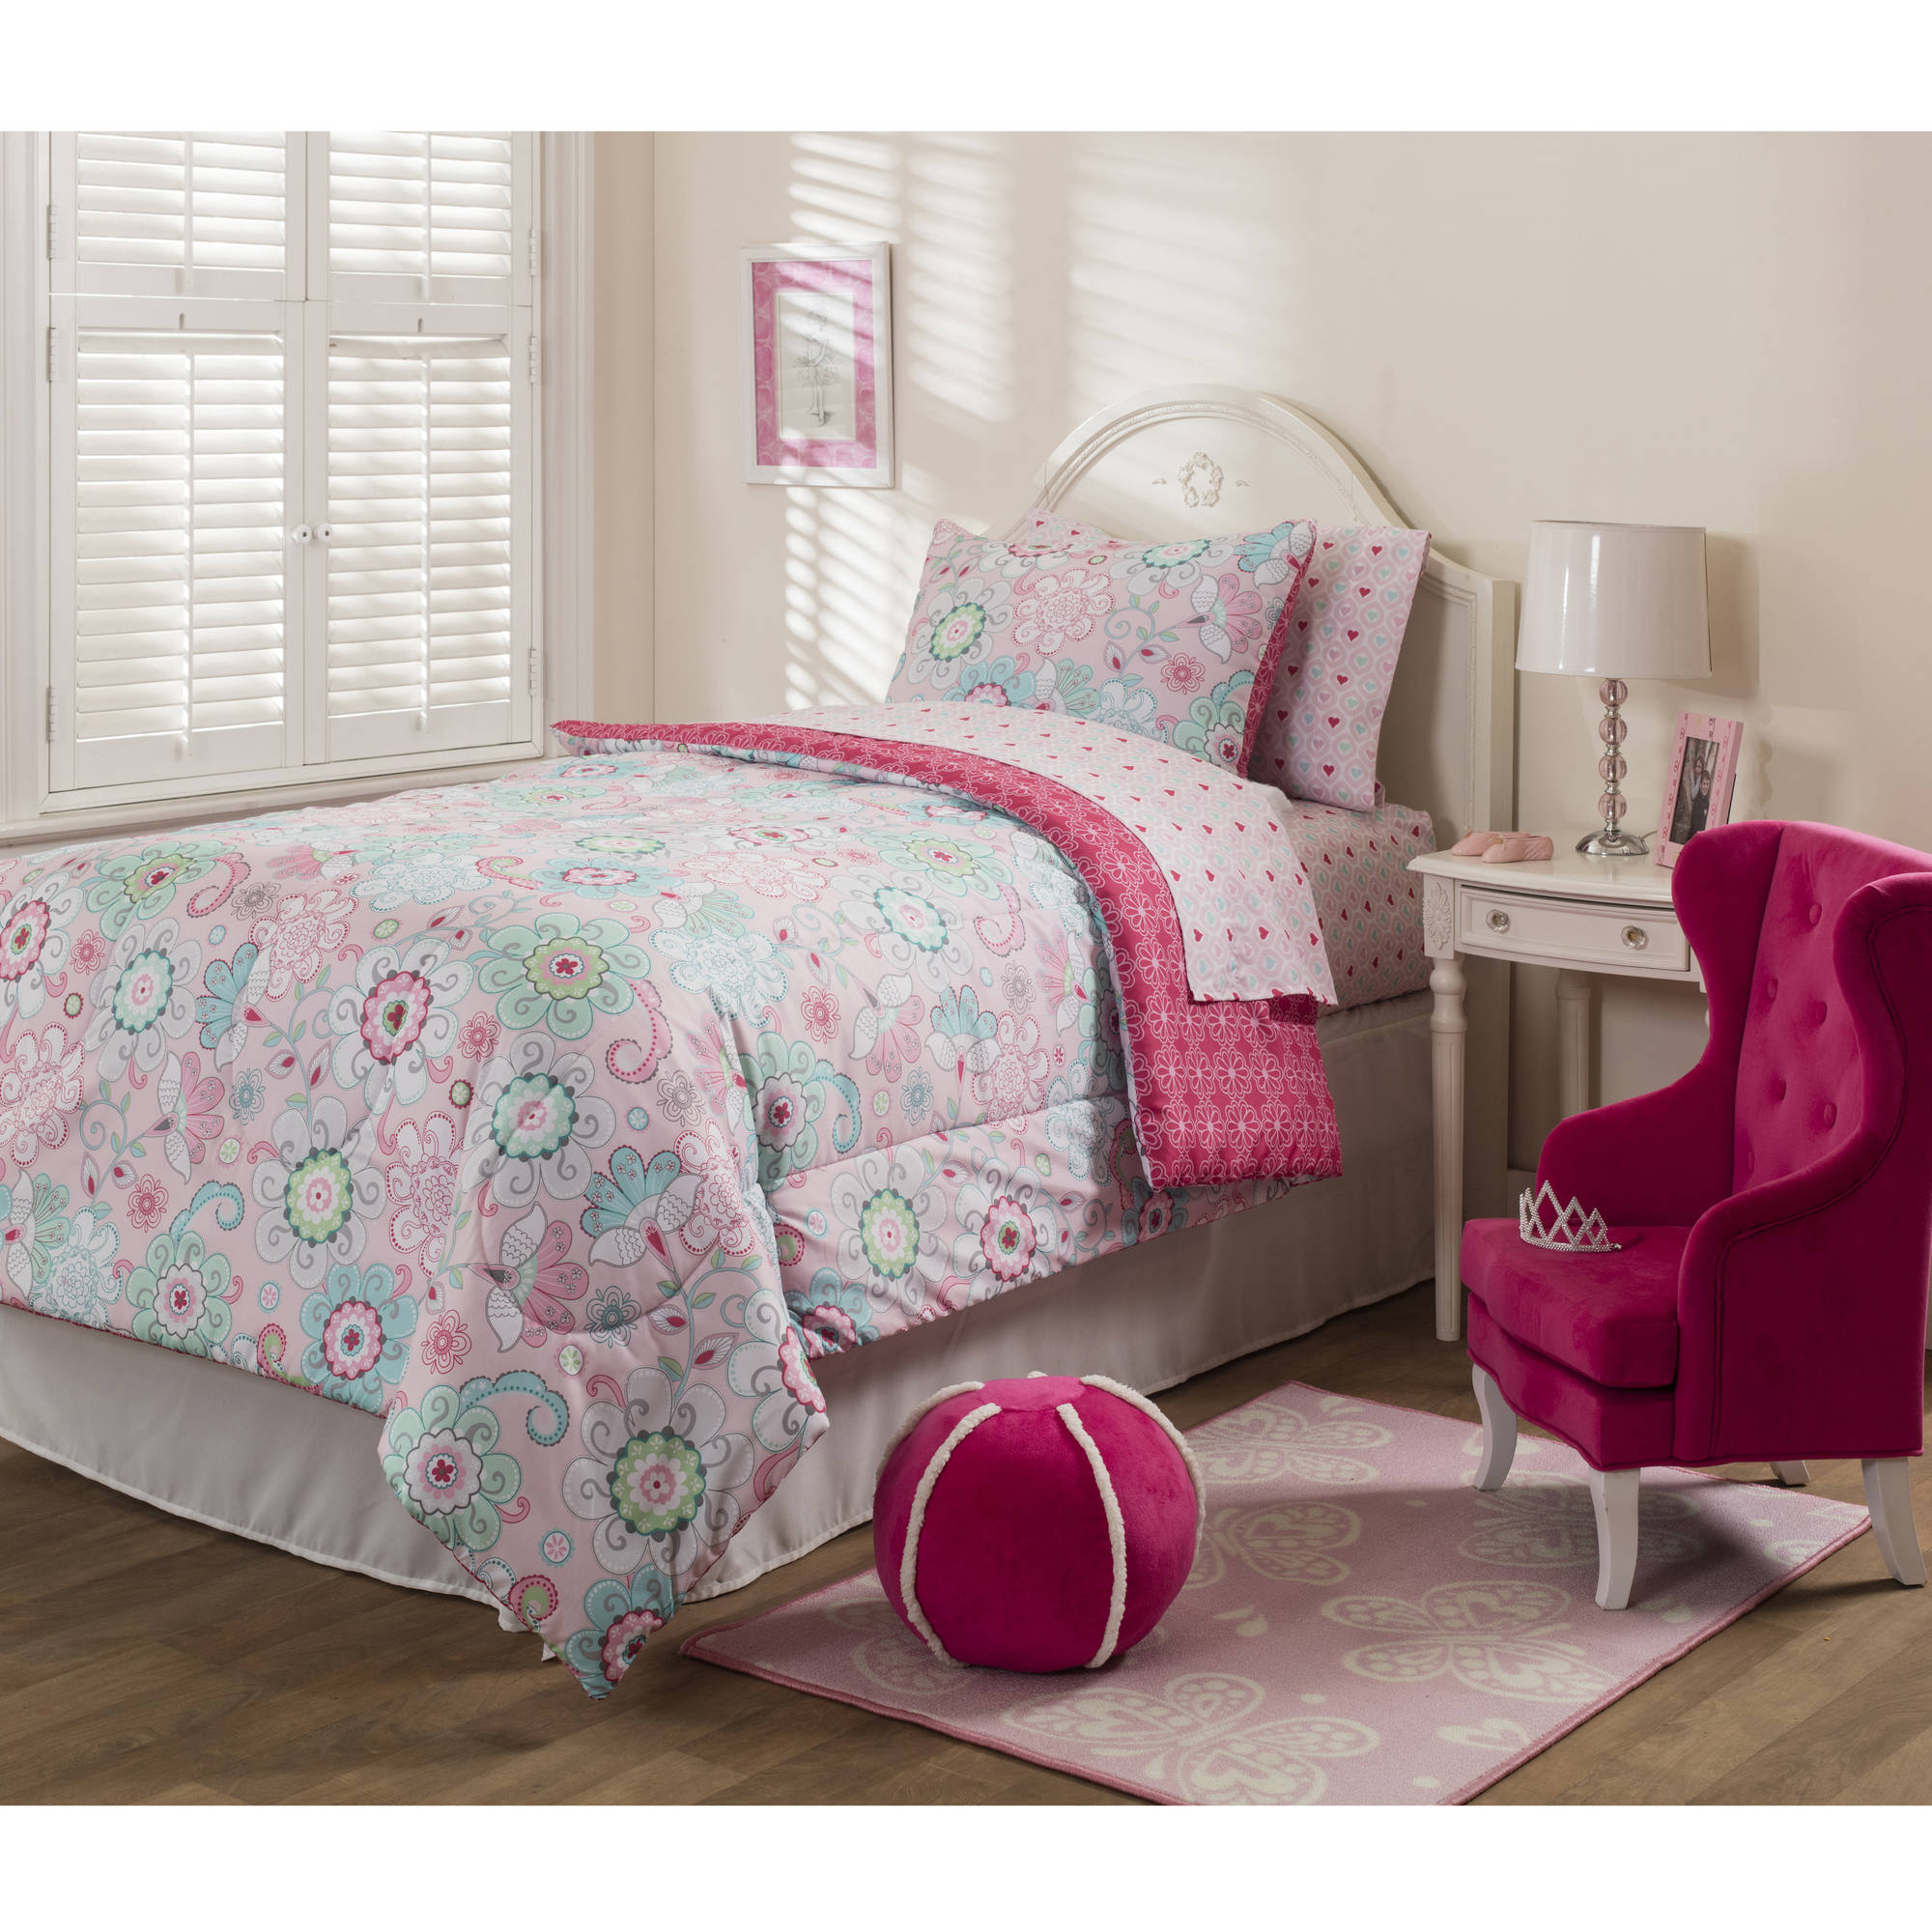 Mainstays Kids Sherbet Pink Bed In A Bag Bedding Set   Walmart.com